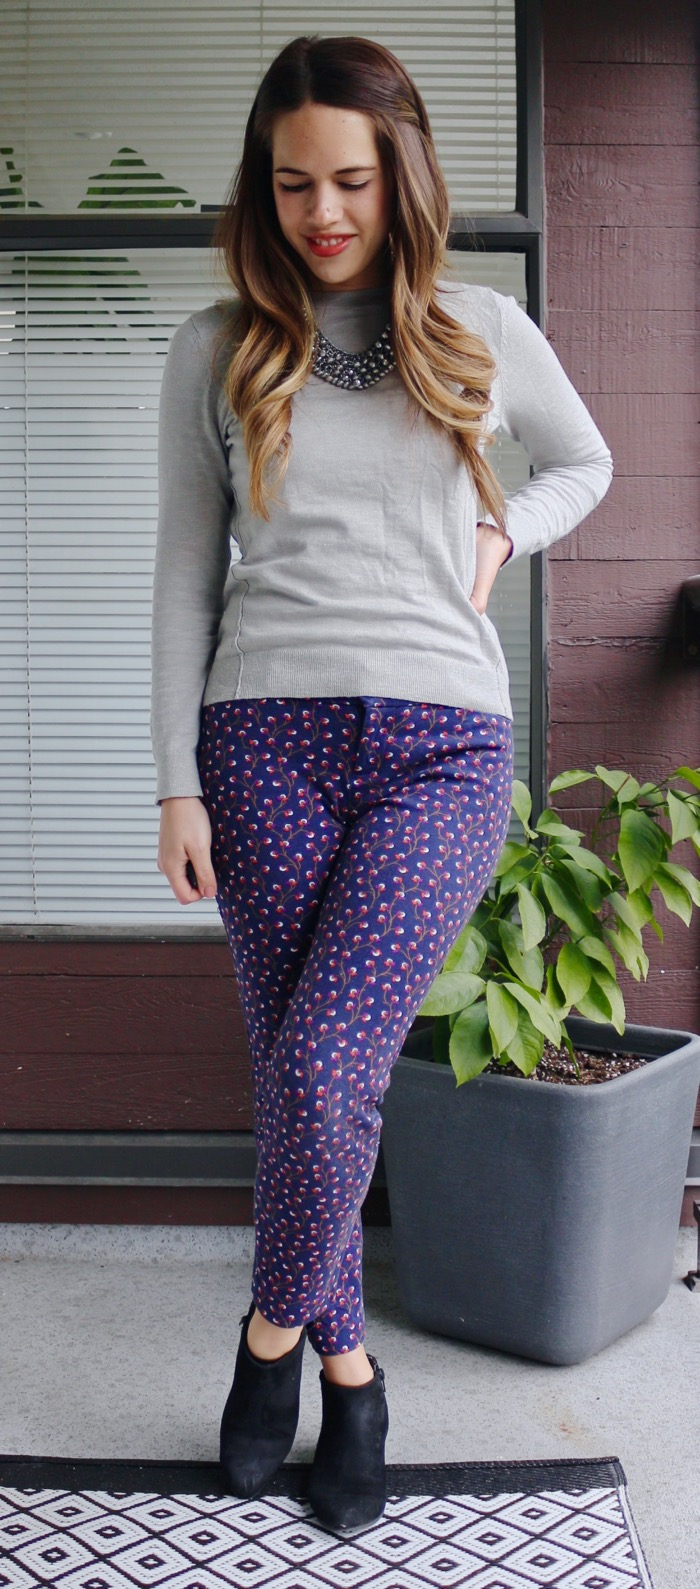 Jules in Flats - Patterned Pants with Grey Sweater for Work